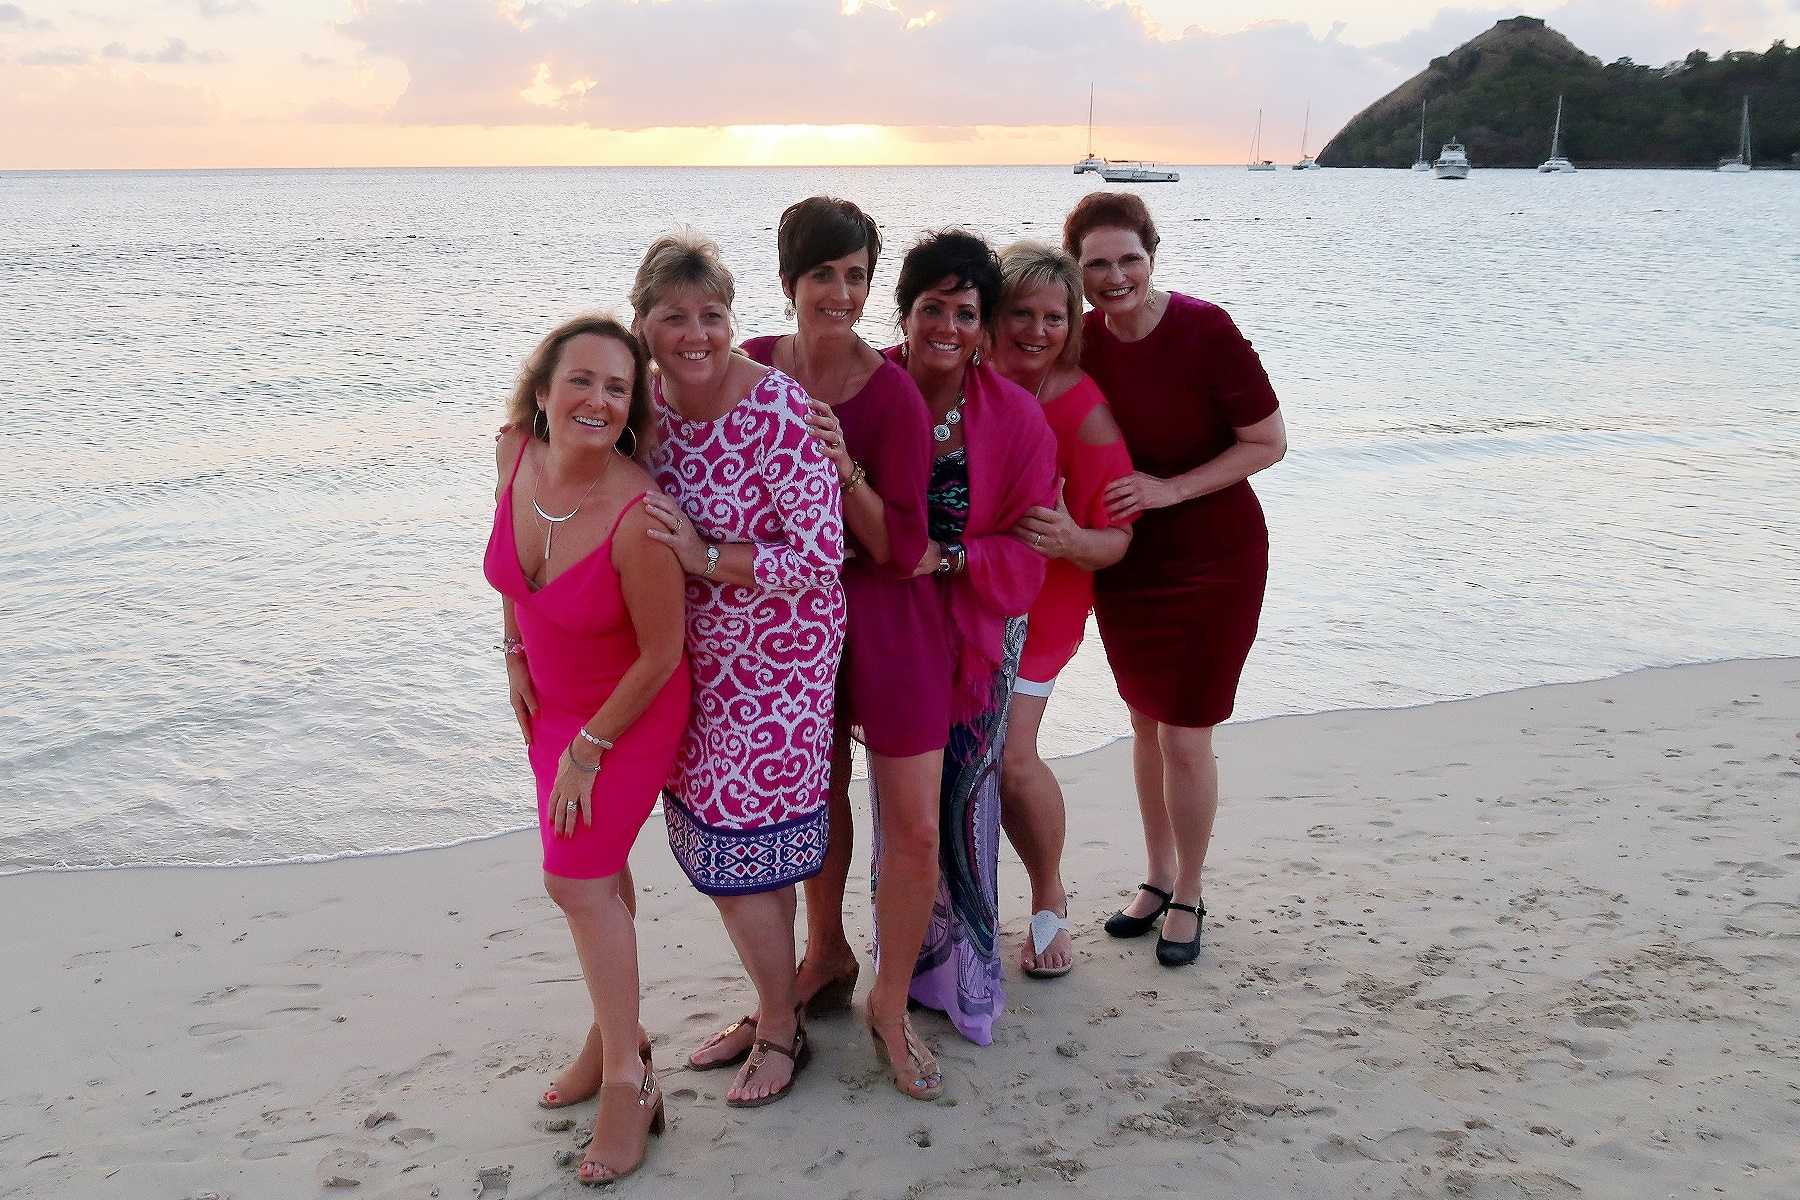 Marianna (far left) and other Senior Executive Ambassadors during our 2019 Ambassador Achievement Trip to St. Lucia.